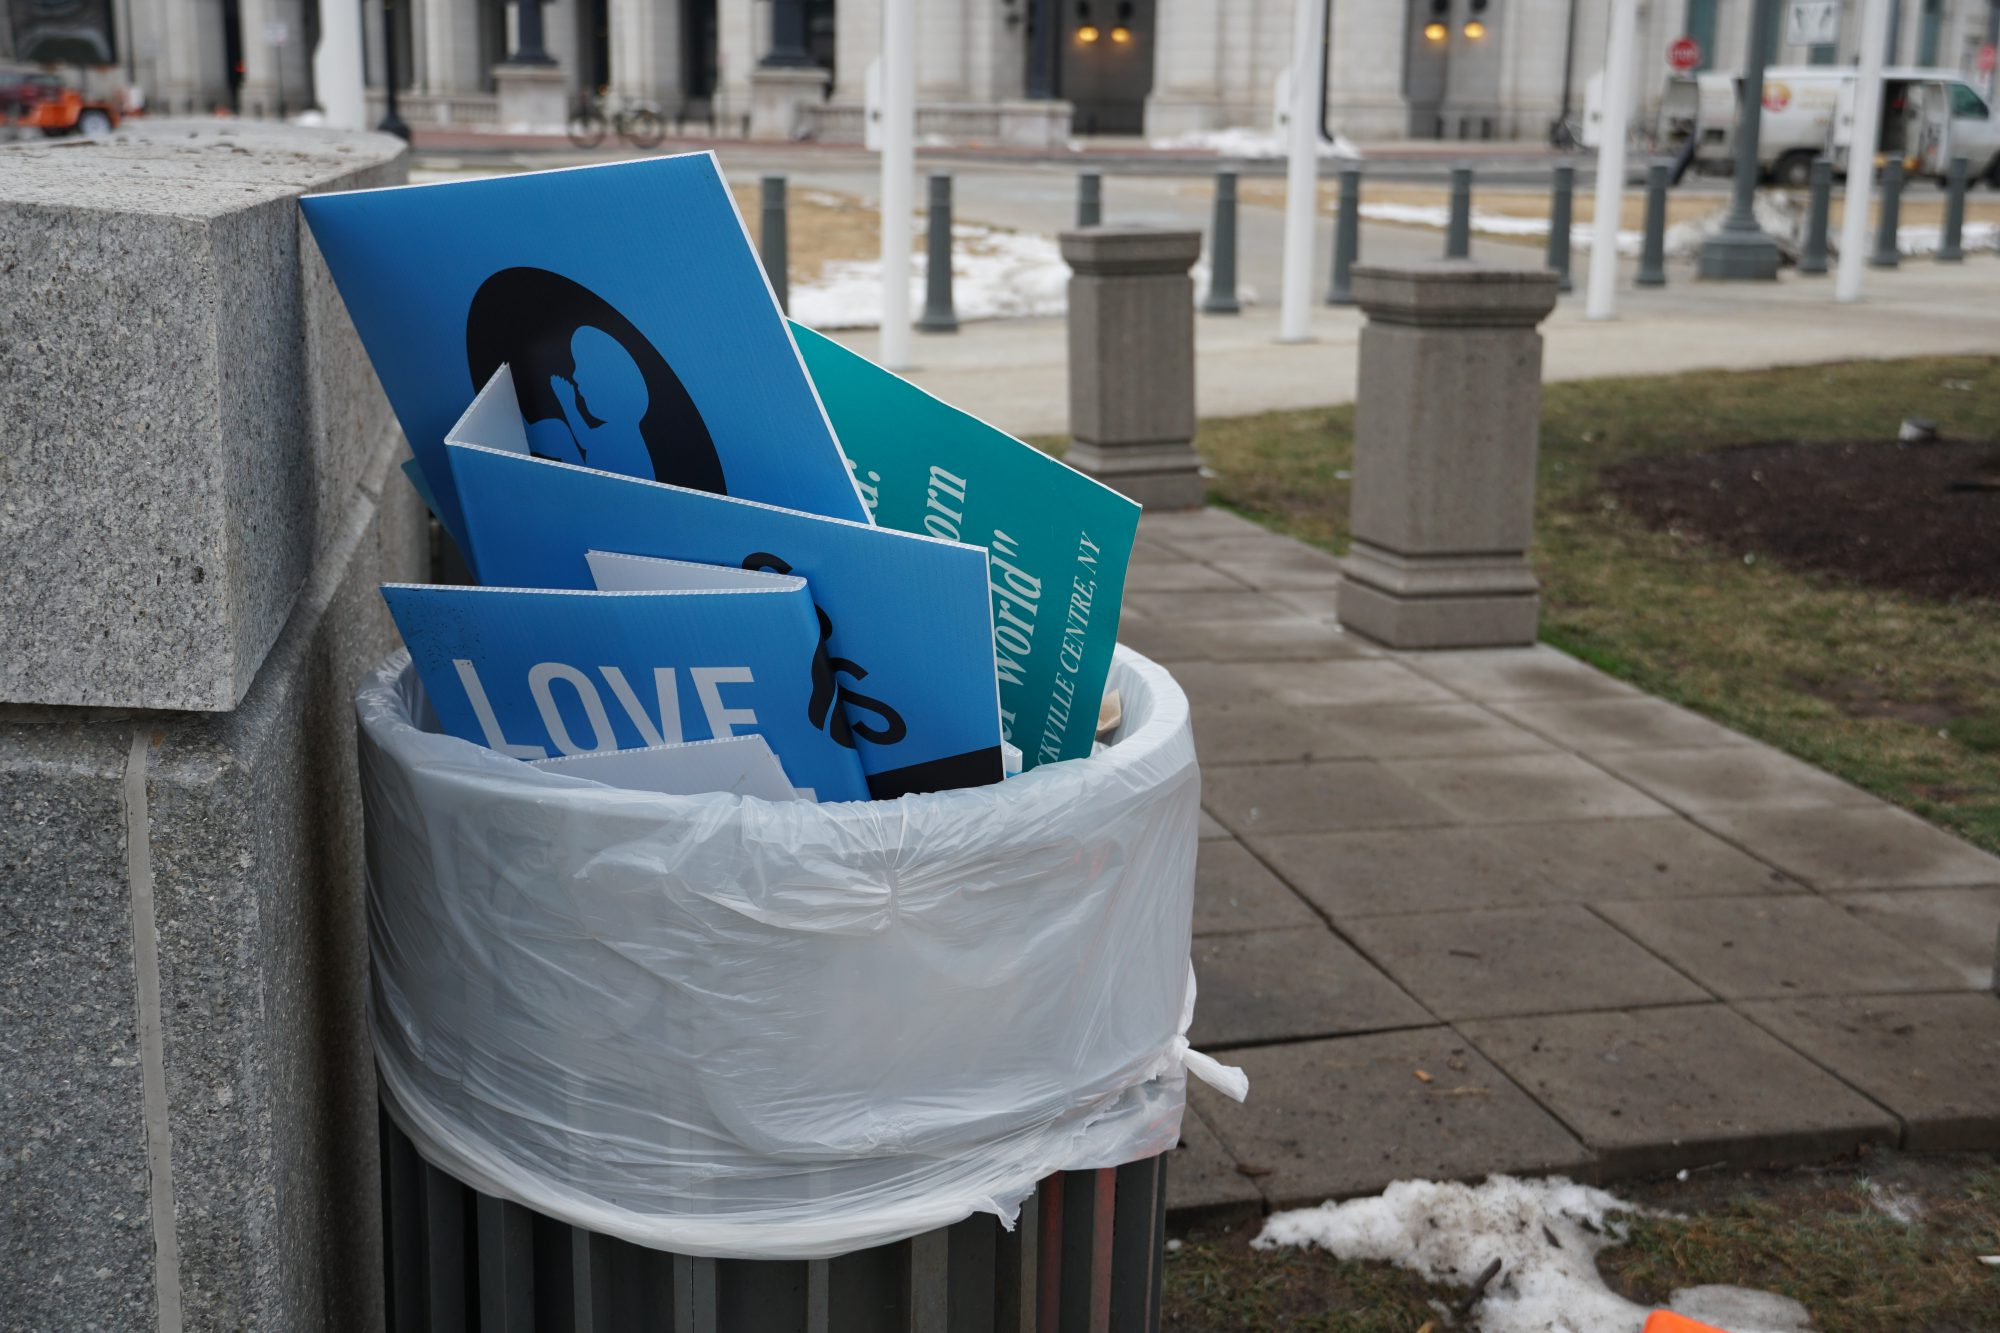 Trash bins by Union Station were filled with anti-abortion signs the day after the march. (Ester Wells/MNS)